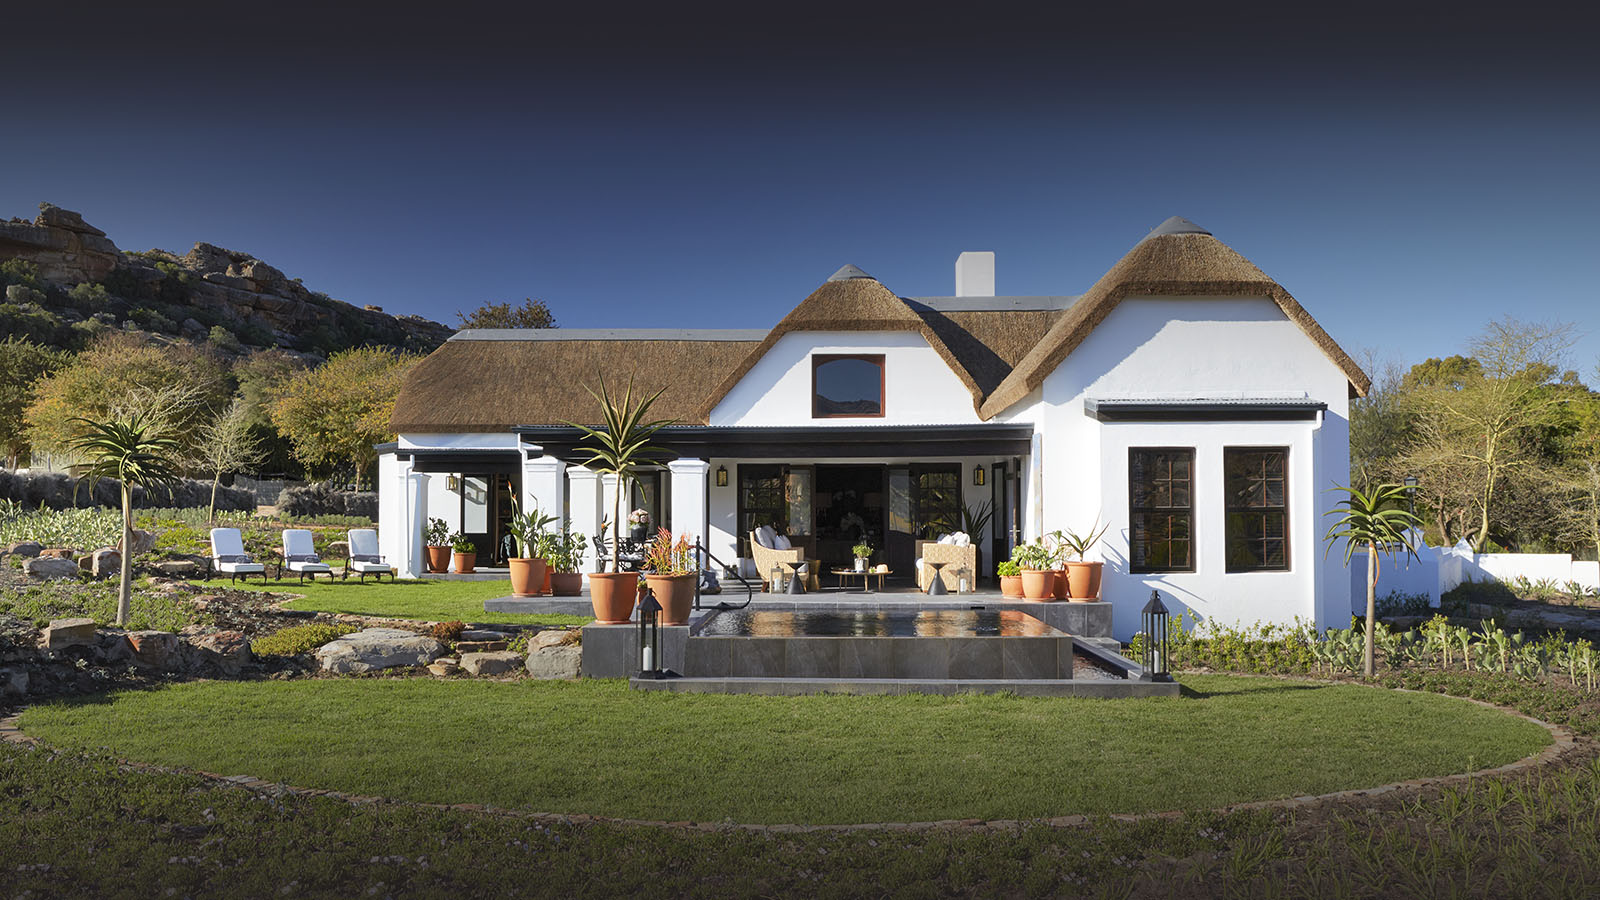 bushmans kloof winelands-lodges-south-africa-accommodation-zambia-in-style-cederberg-mountains-african-wilderness-ancient-artwork-house